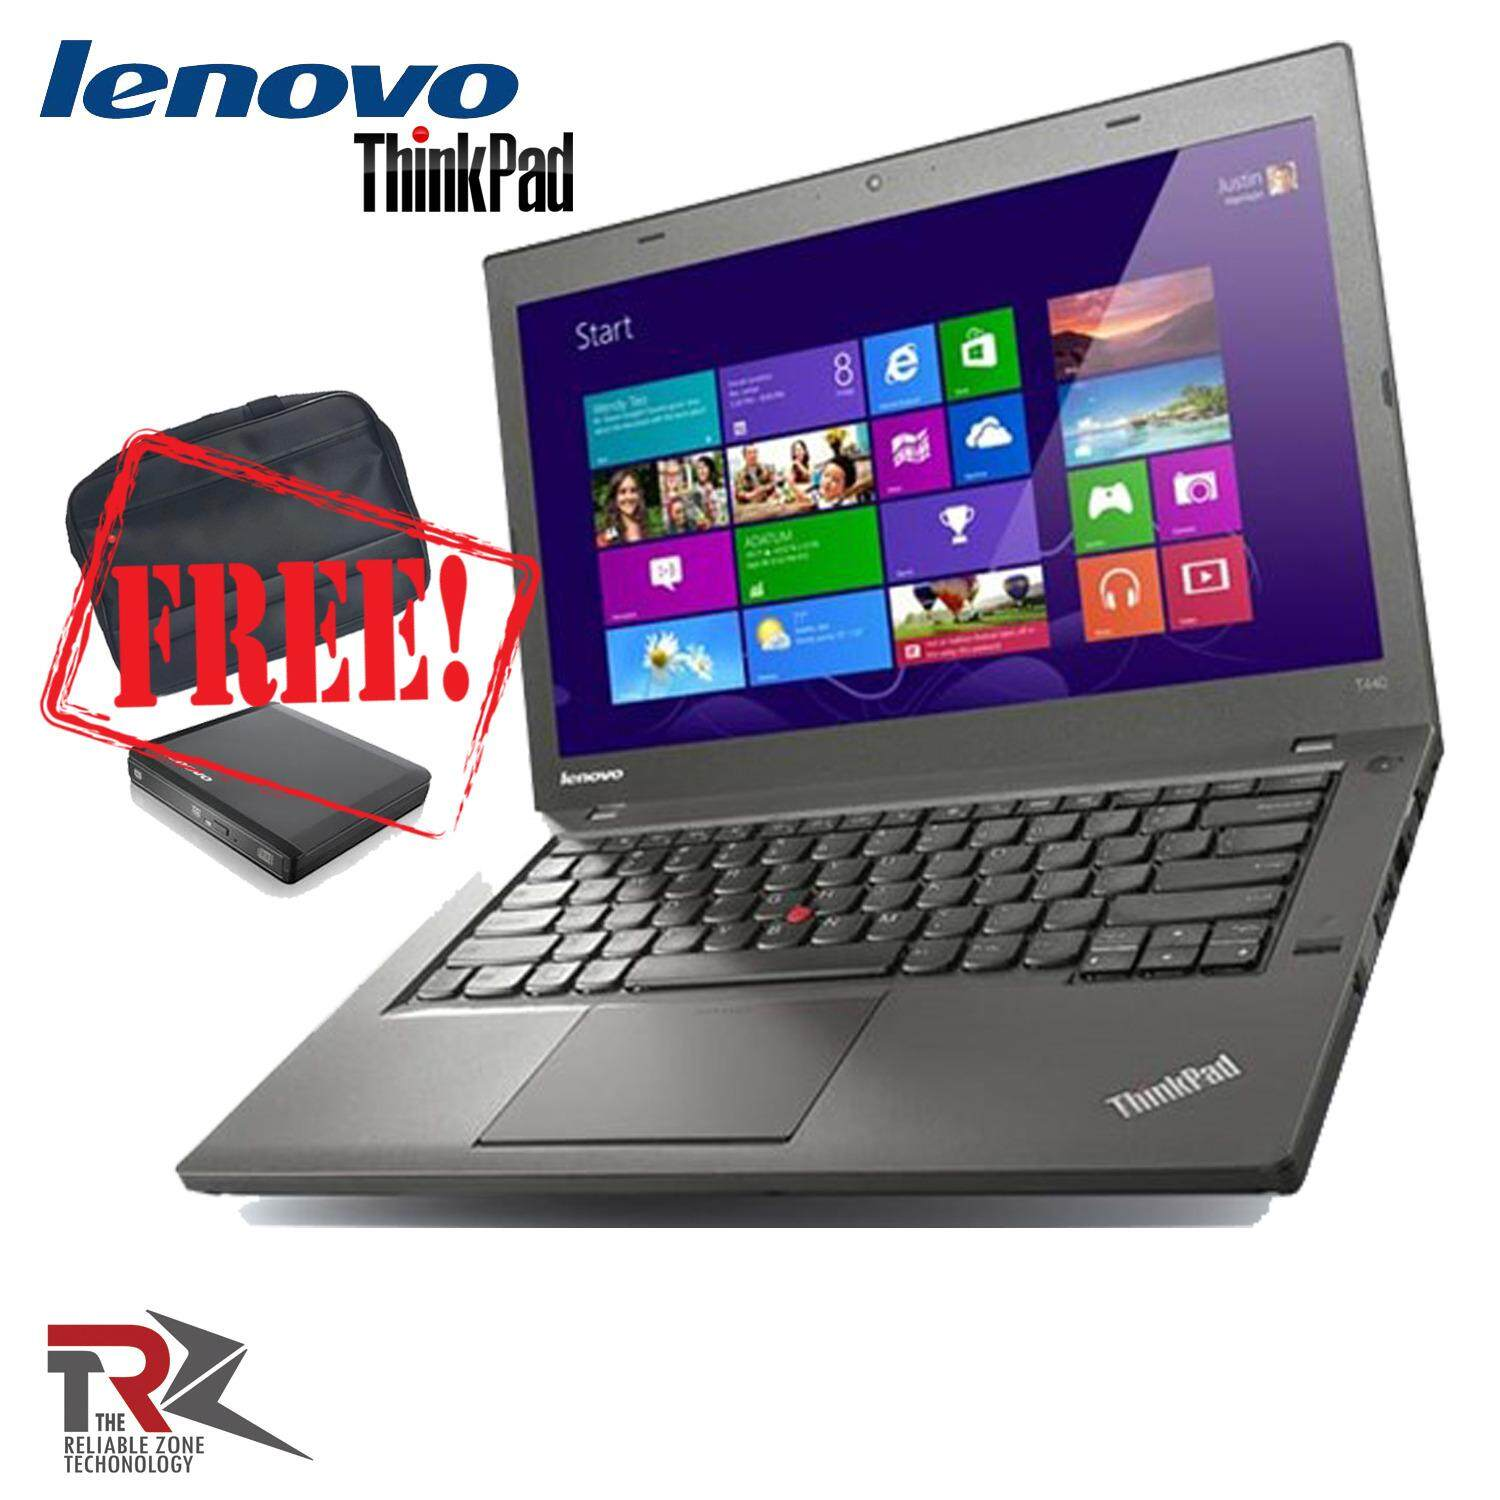 LENOVO ThinkPad X240 - 12.5inch - Intel Core i5-4300U - 4GB RAM - 500GB HDD - EXTERNAL DVD- RW - WINDOWS 7 PRO 64 BIT ( FREE EXTERNAL DVD RW AND LENOVO CARRY CASE FREE) Malaysia